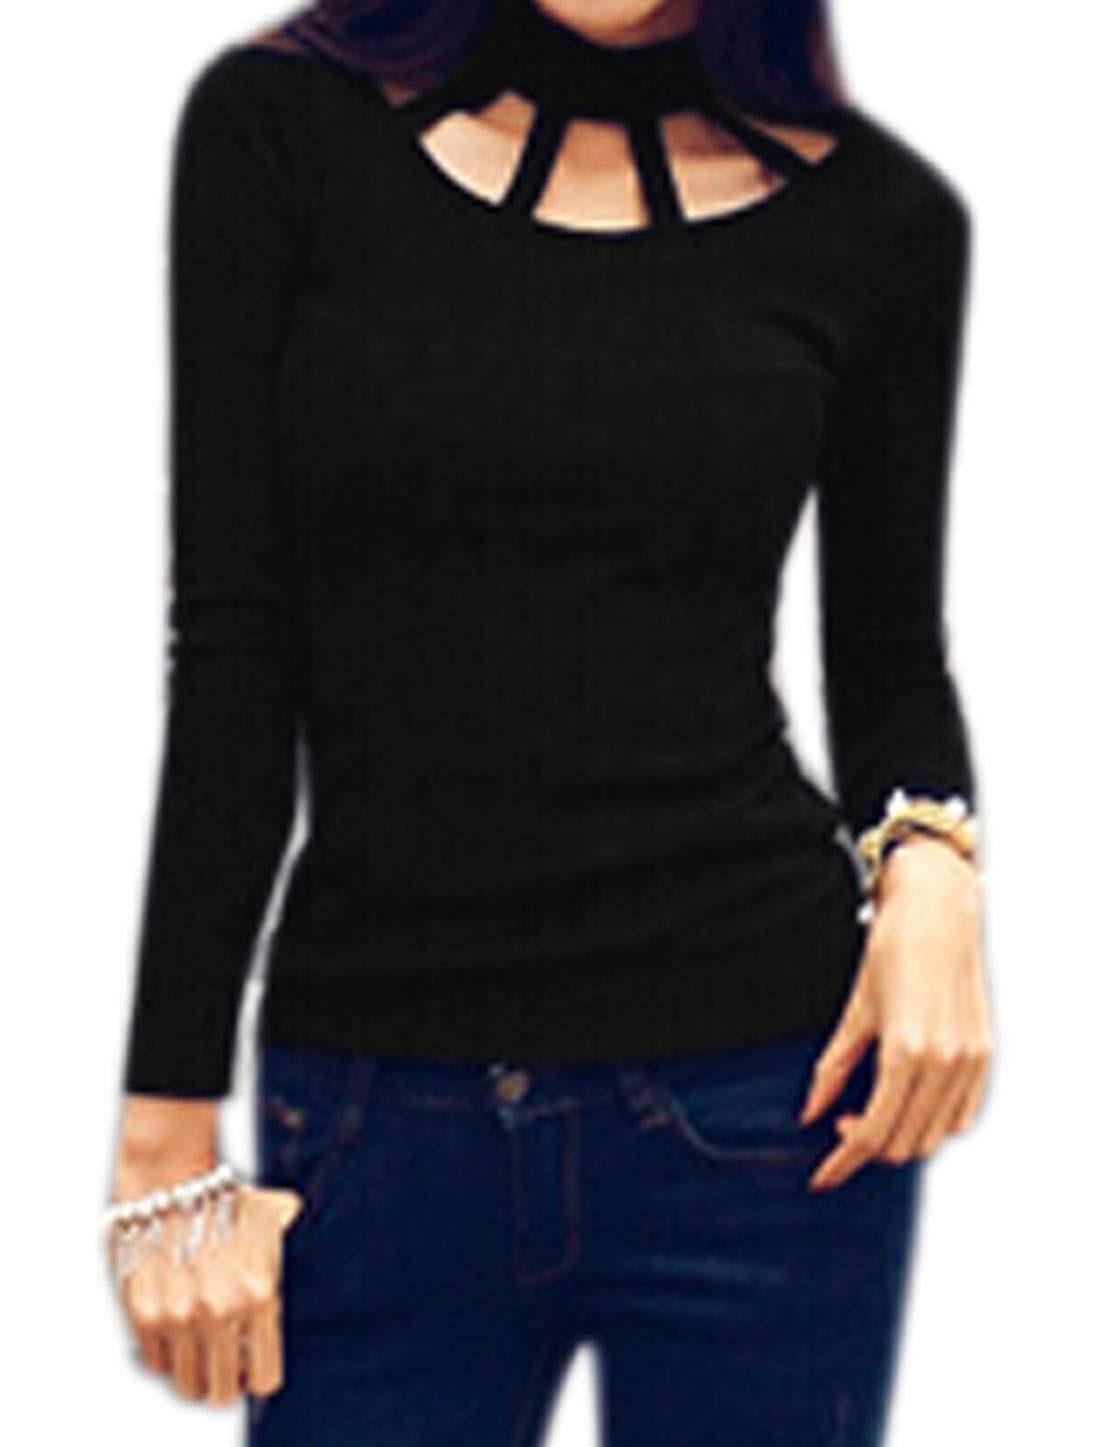 Women Long Sleeves Mock Neck Slim Fit Ribbed Cut Out Top Black XS